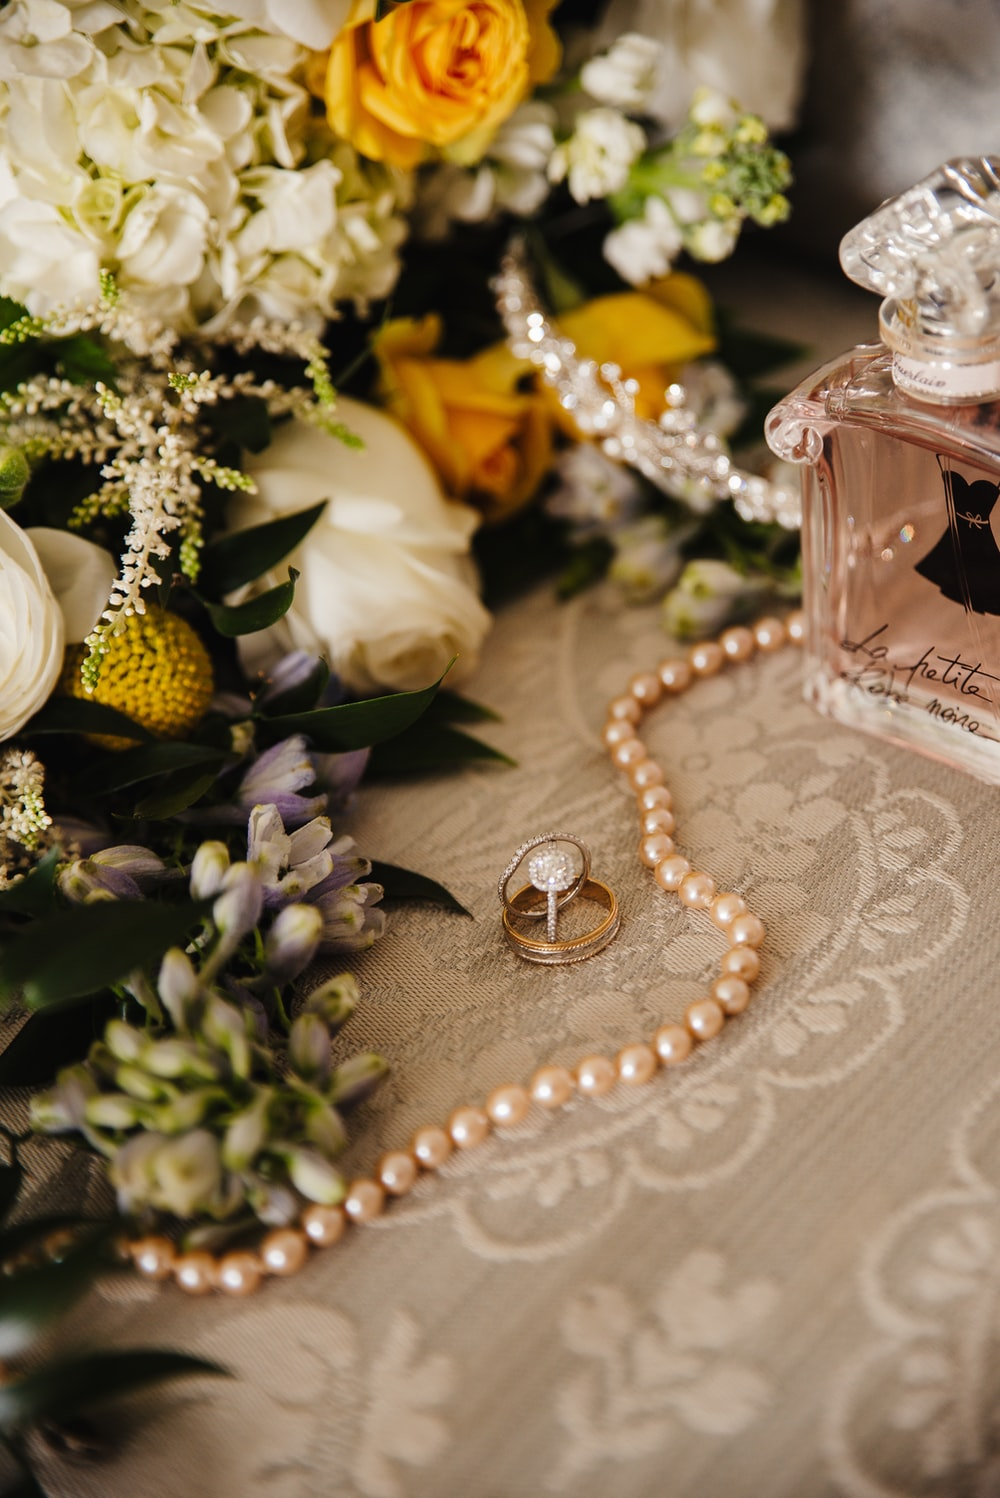 gold and silver beaded necklace beside perfume bottle